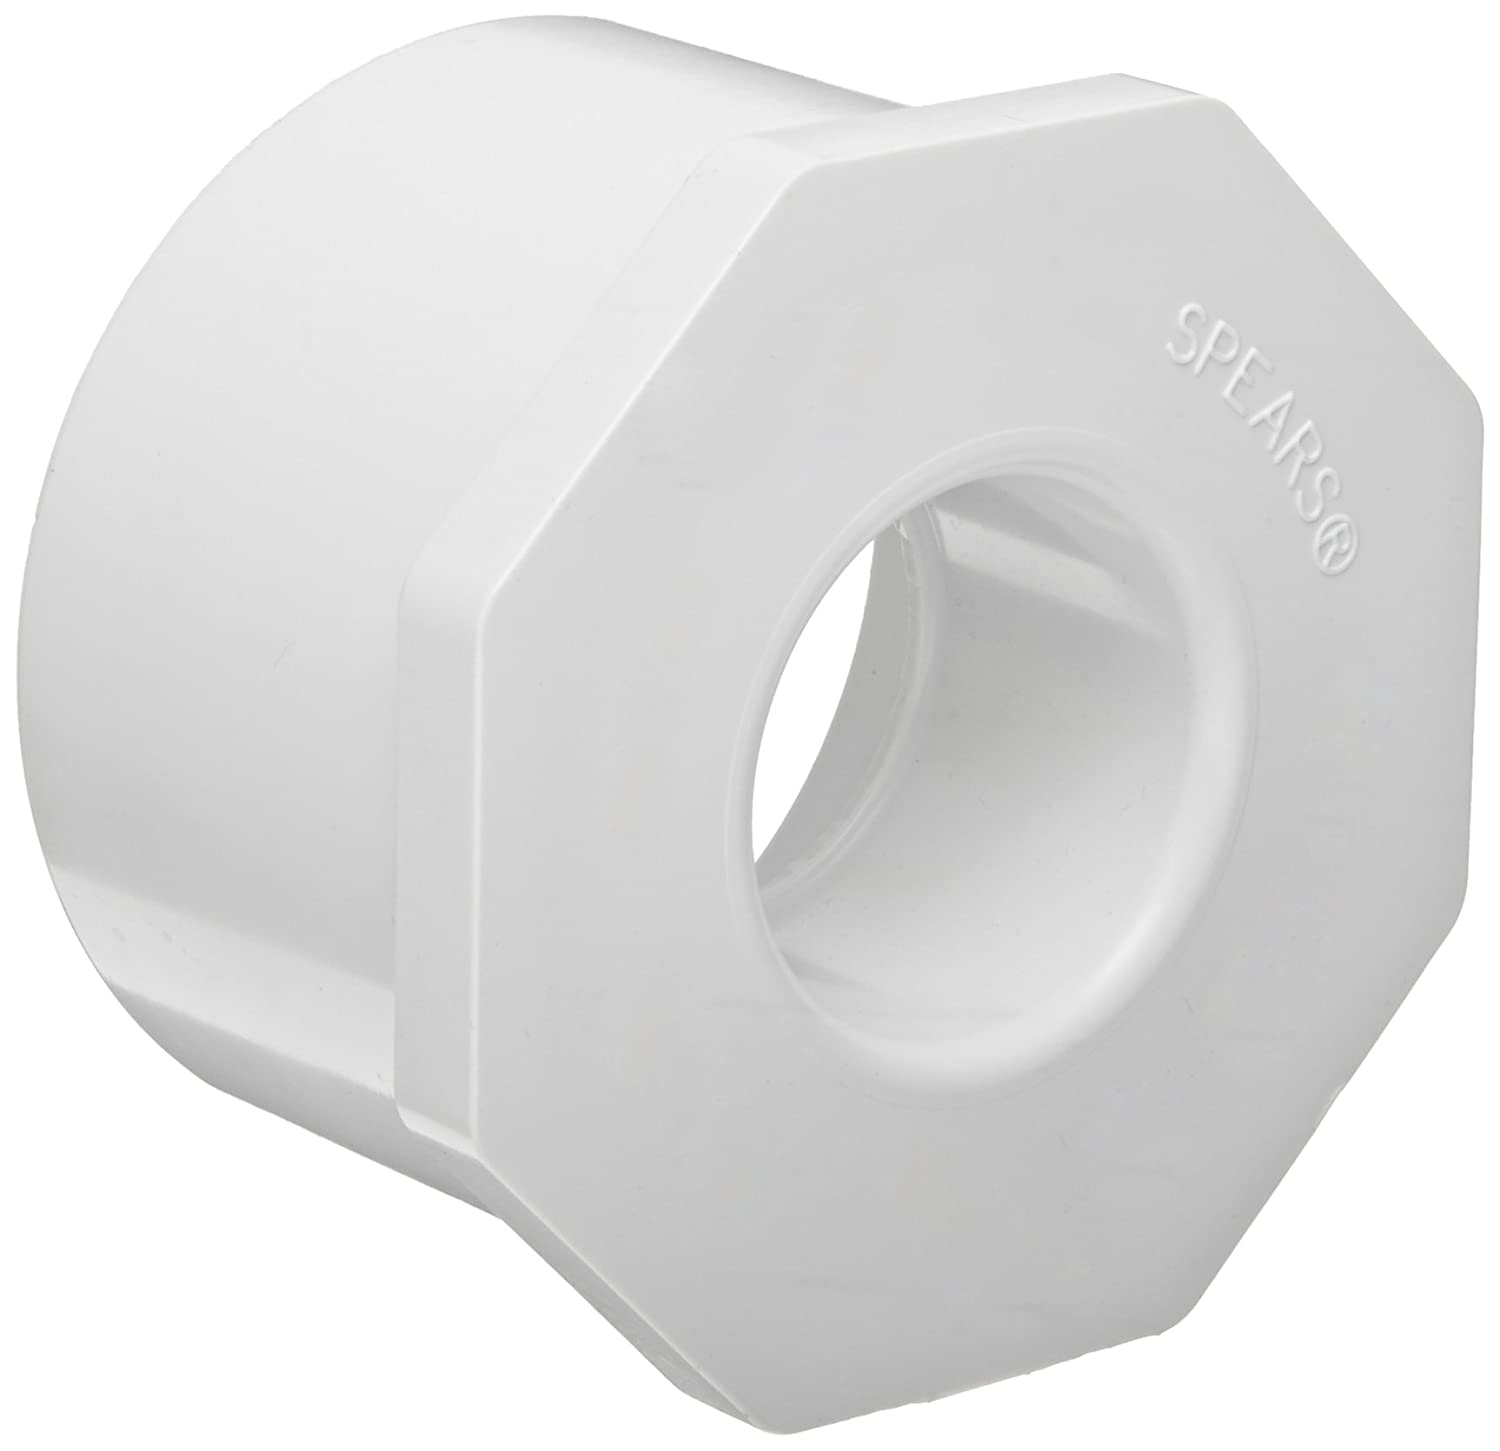 Spears 437 Series PVC Pipe Fitting, Bushing, Schedule 40, White, 1-1/2' Spigot x 1-1/4' Socket 1-1/2 Spigot x 1-1/4 Socket Spears Manufacturing